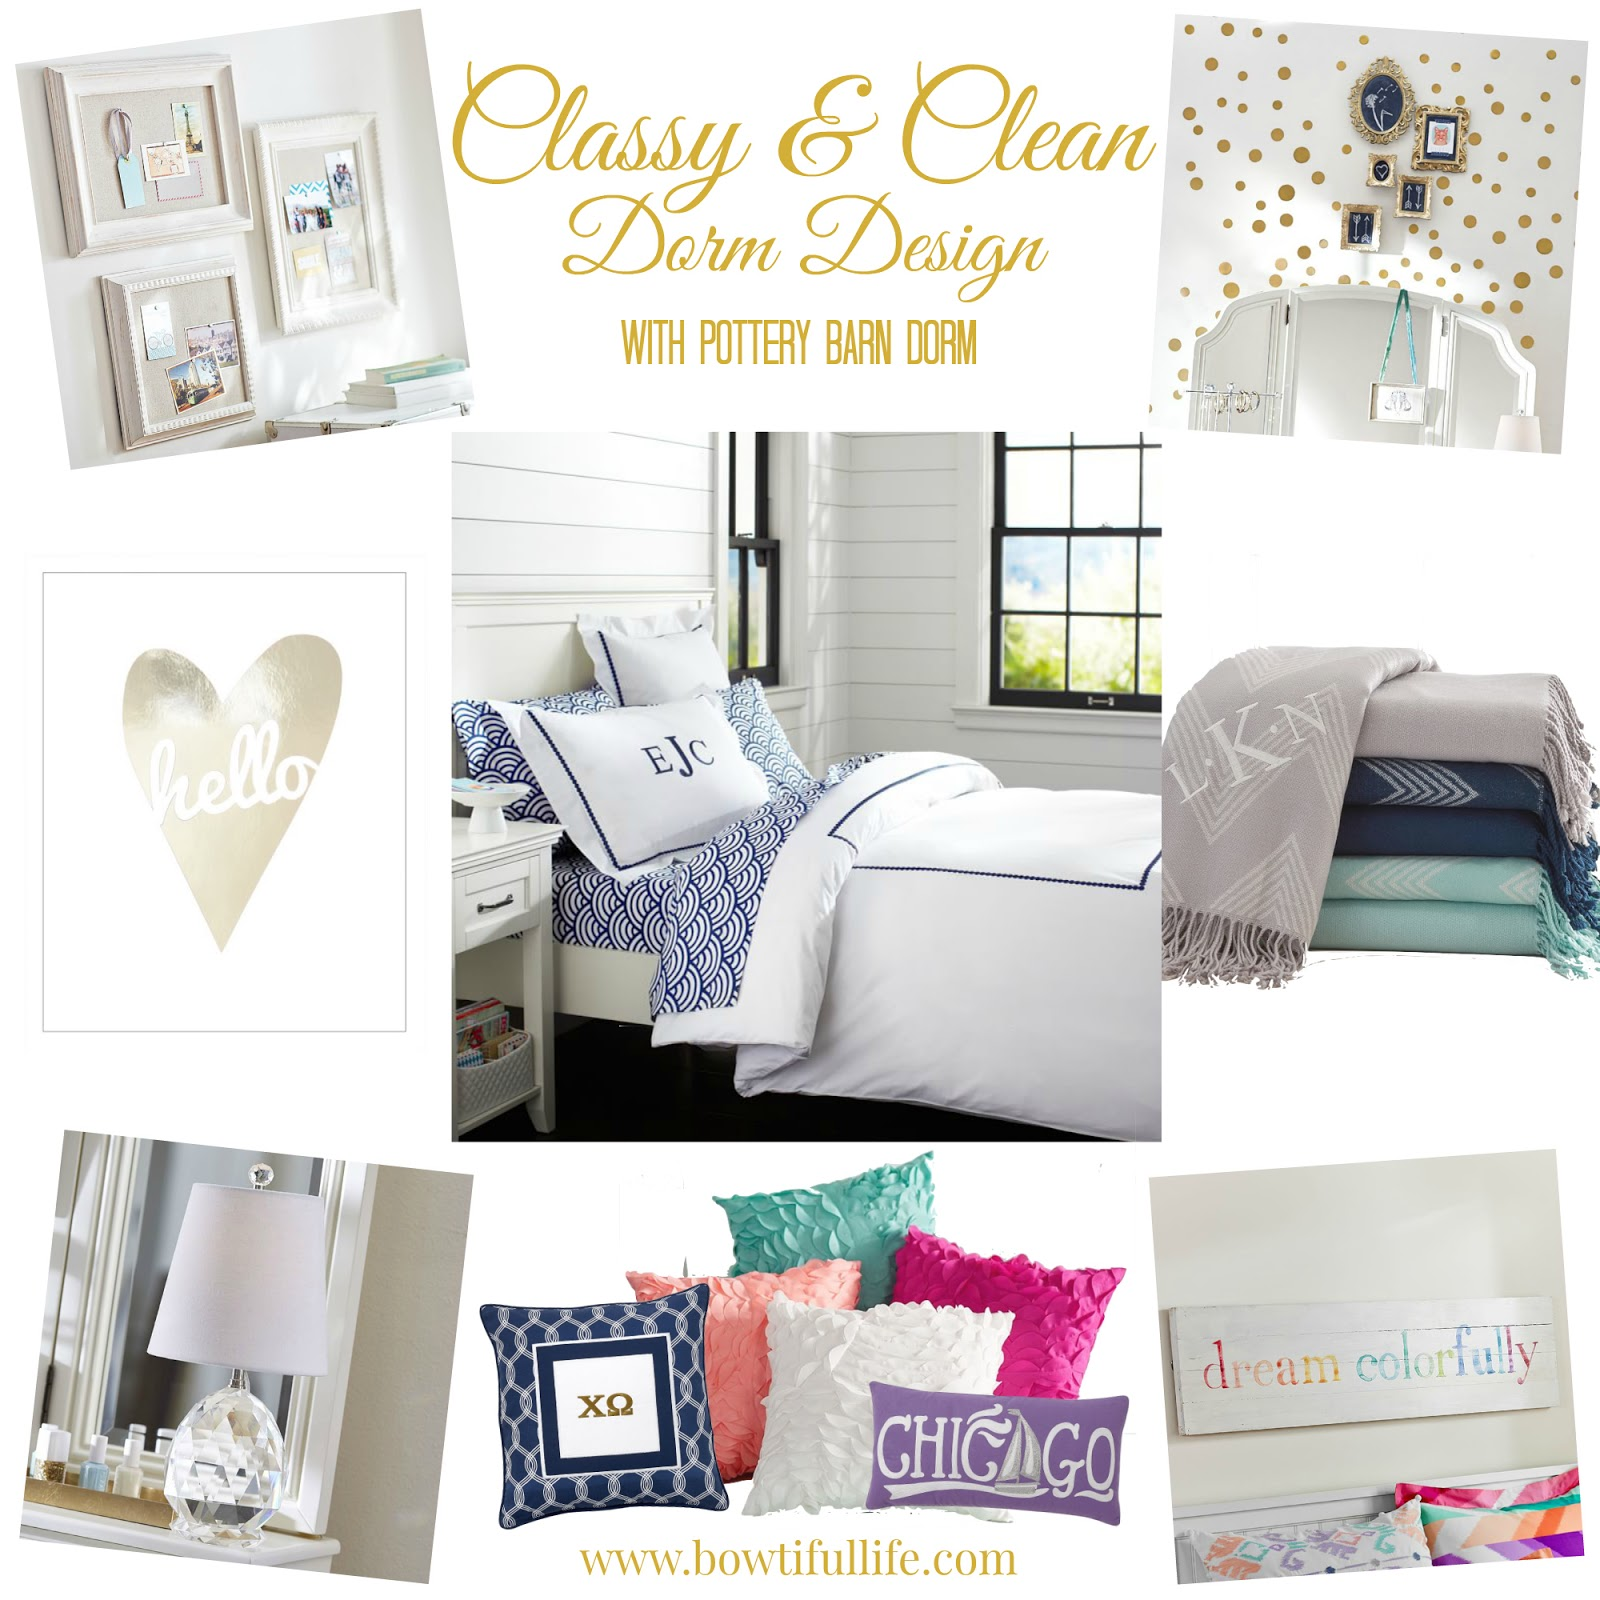 Classy & Clean with Pottery Barn Dorm